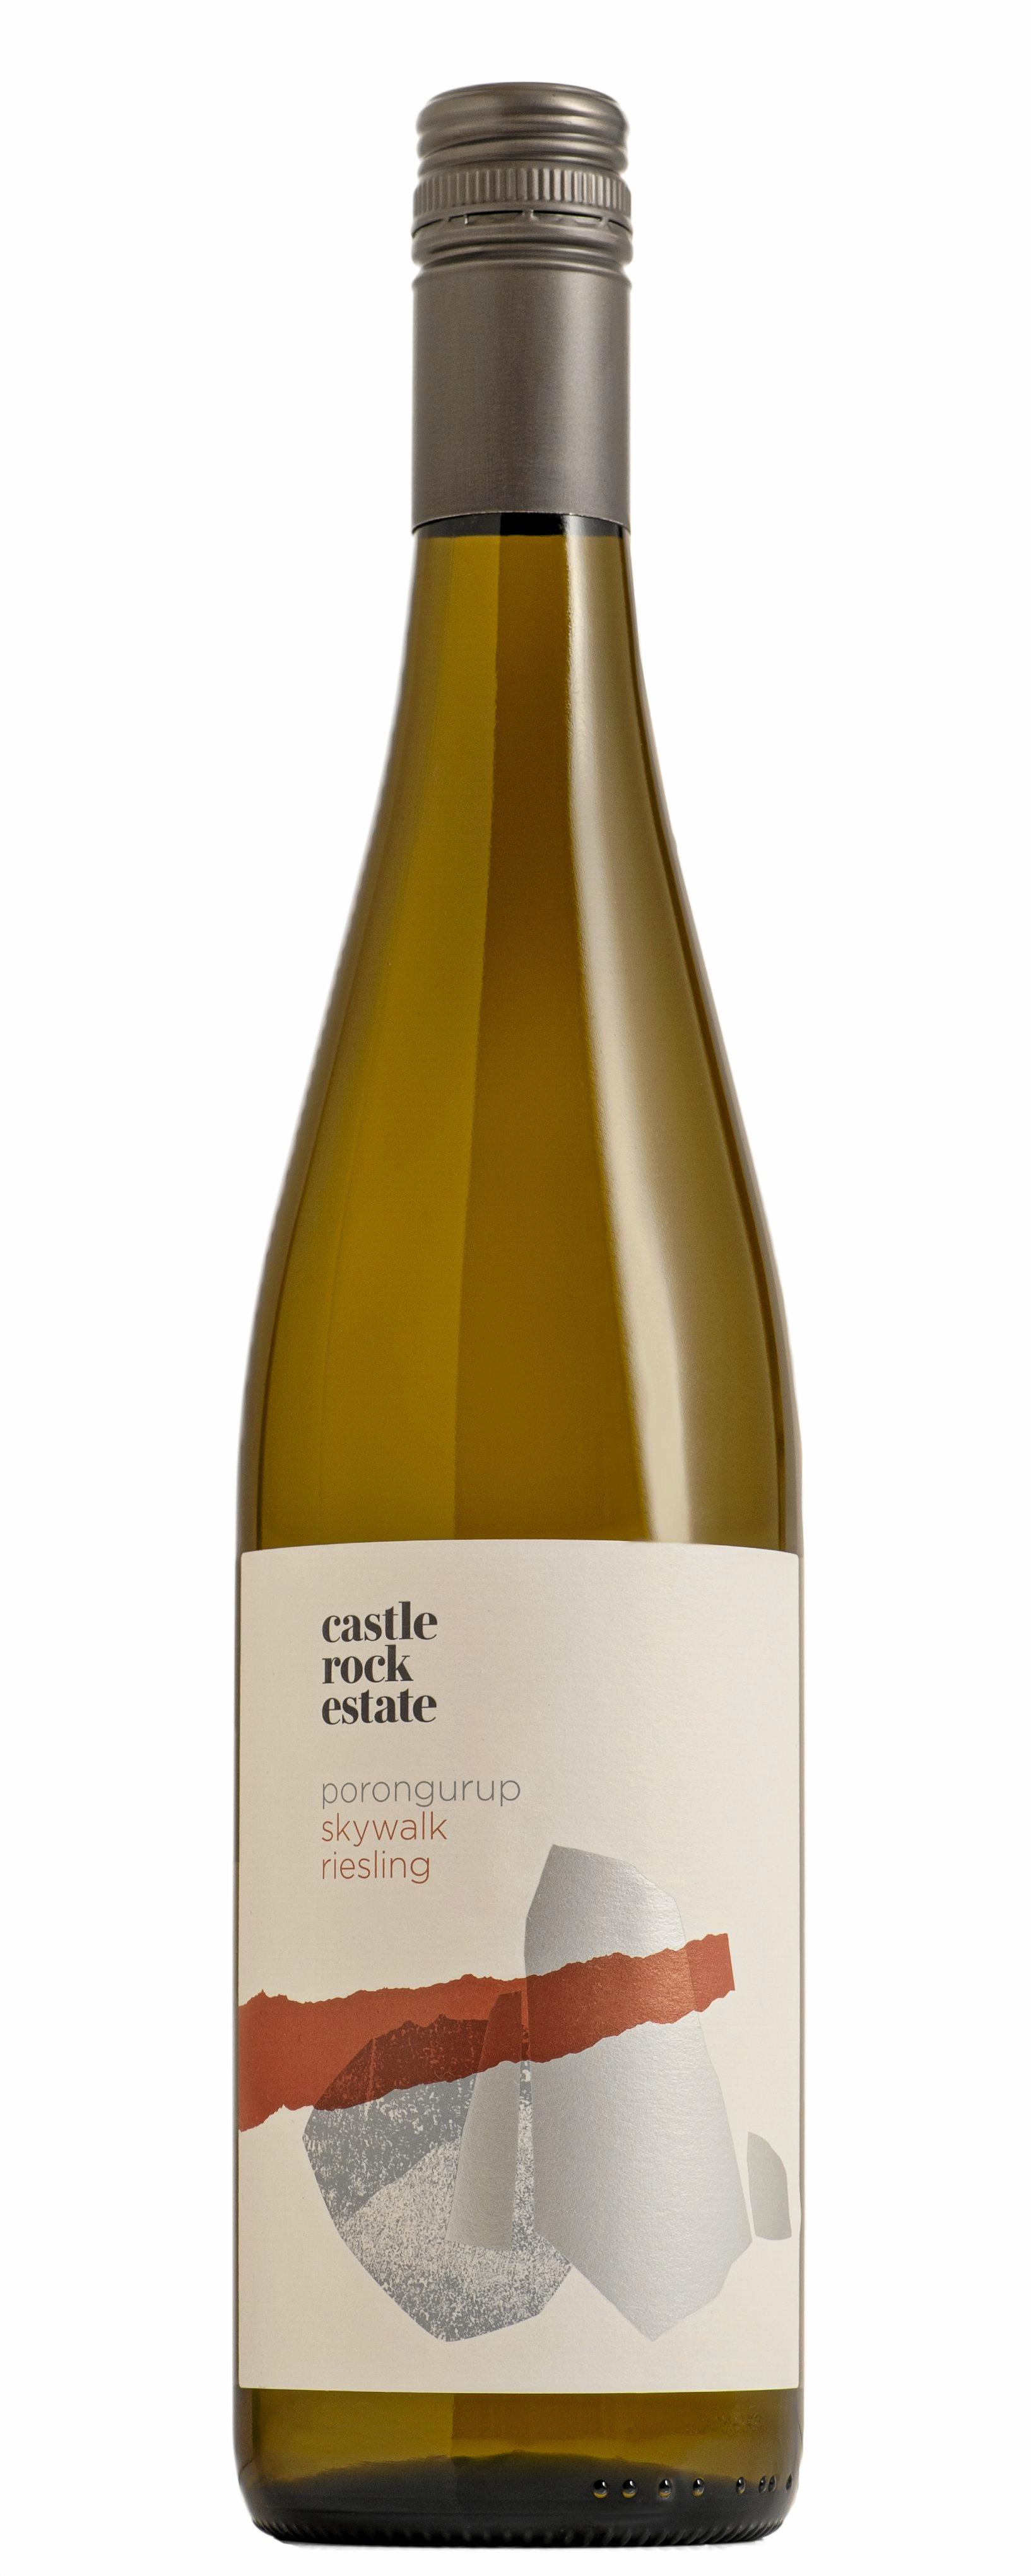 Castle Rock wines